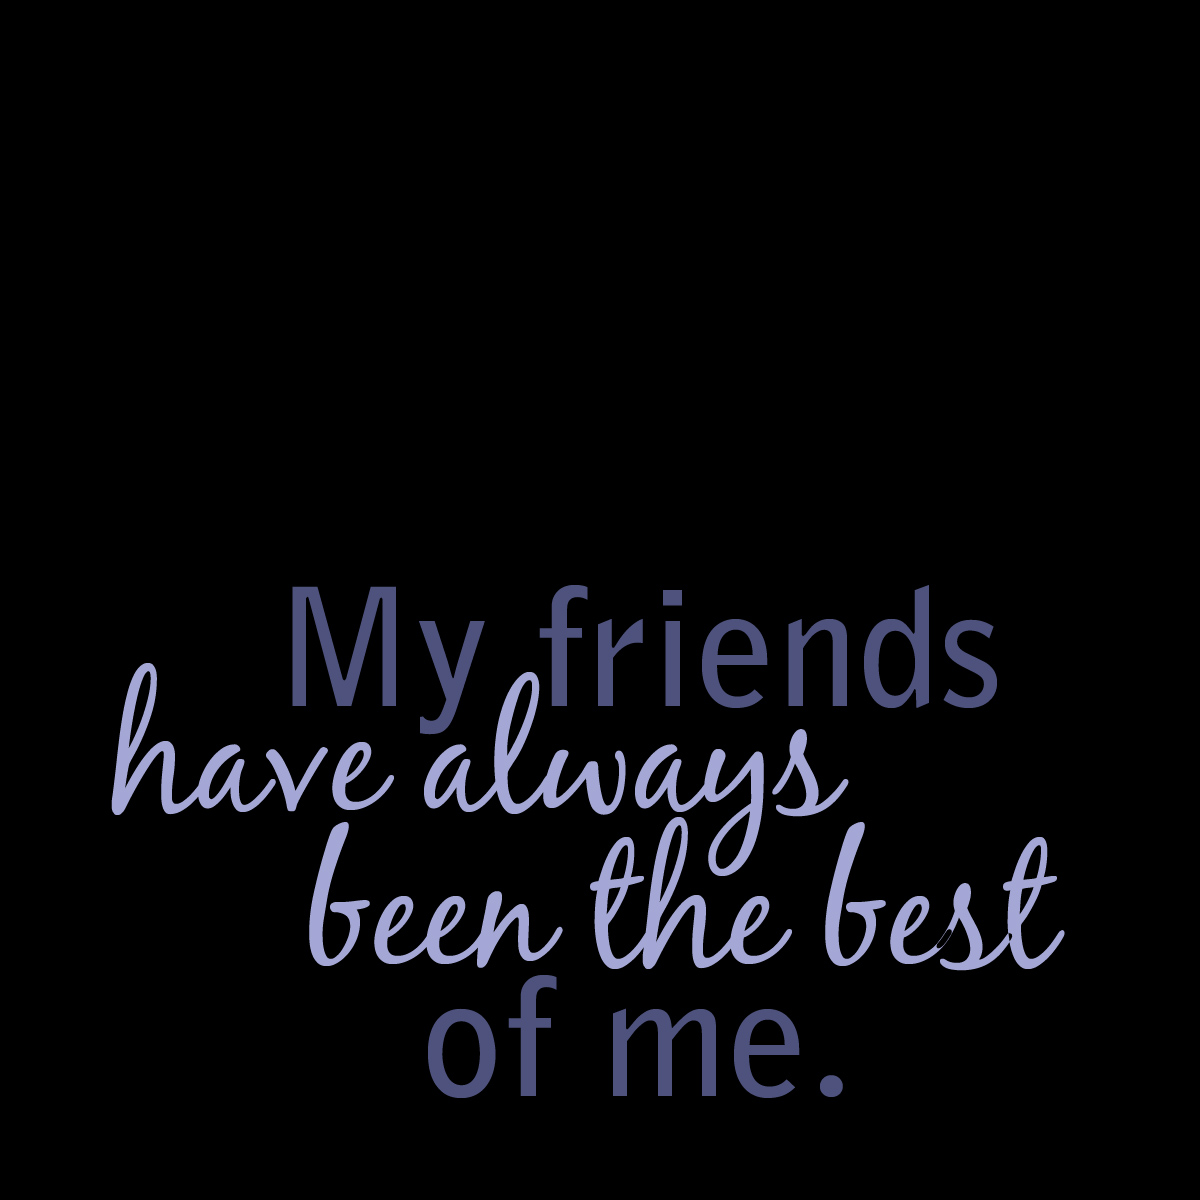 Famous Quote About Friendship Fascinating Friendship Hd Image And Quotes Download Friendship Wallpapers And